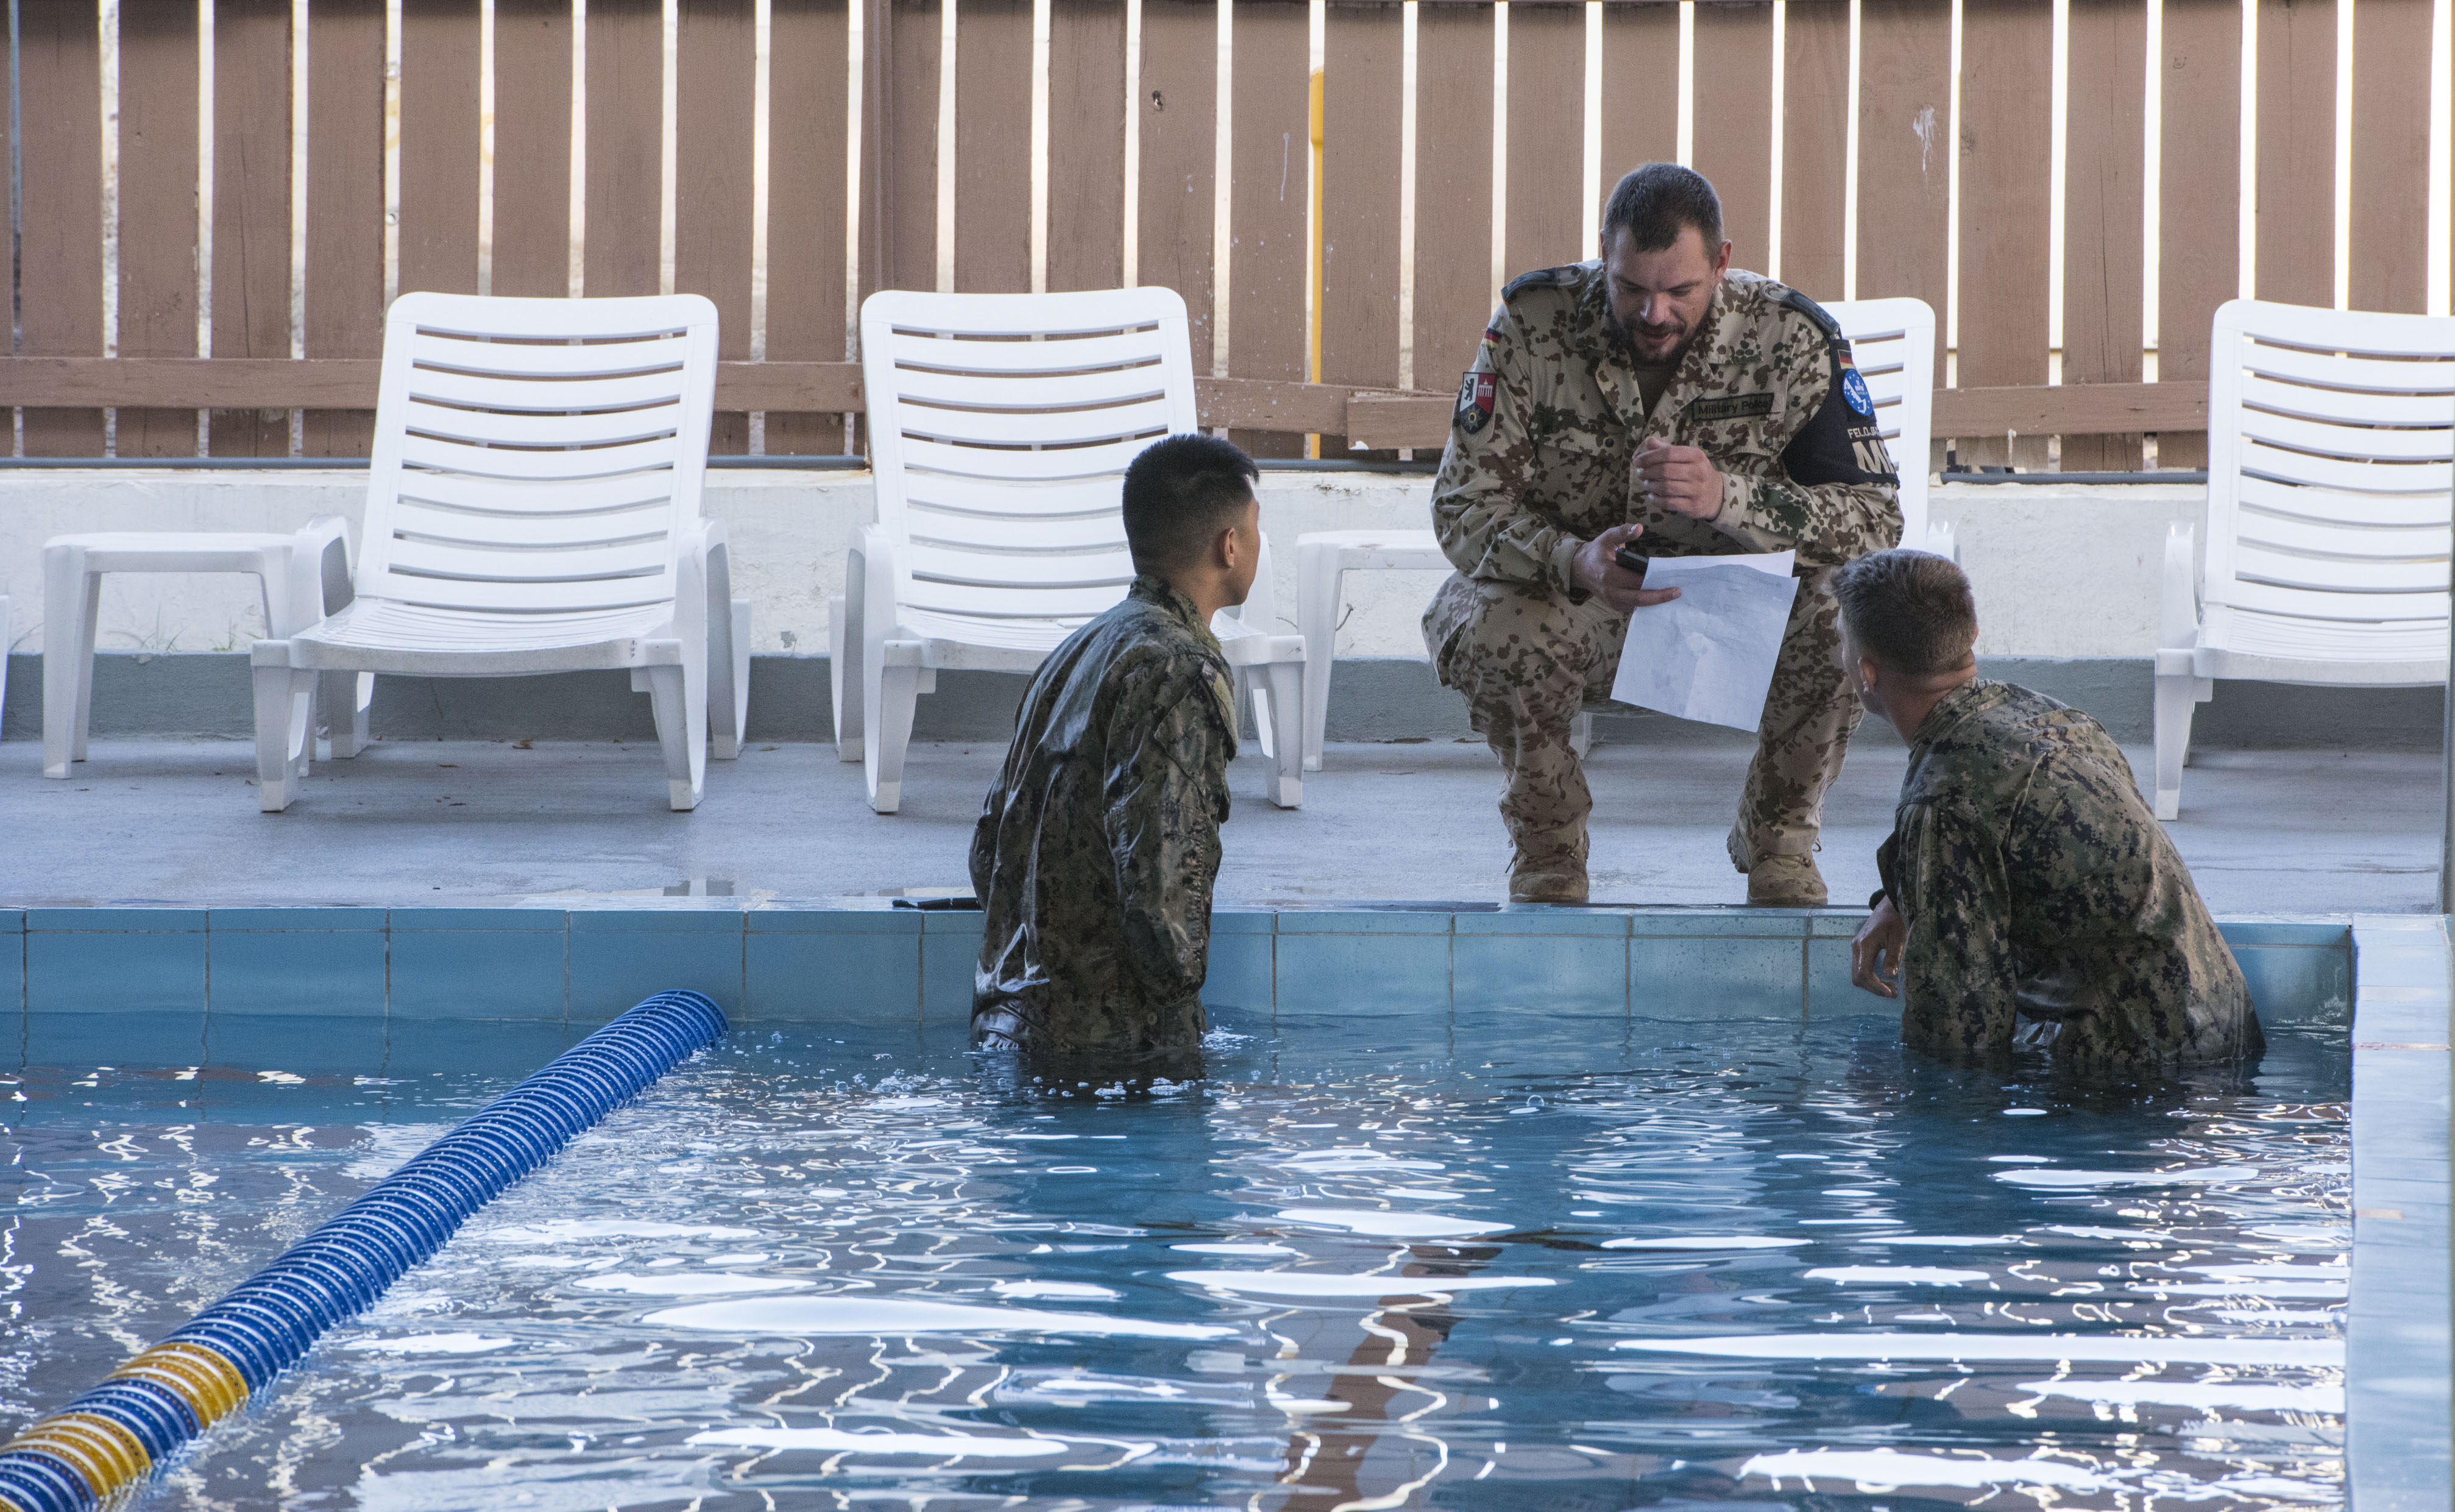 U.S. service members assigned to Combined Joint Task Force-Horn of Africa complete a swim test in uniform as part of the competition to earn the German Armed Forces Proficiency Badge (GAFPB), a decoration of the Armed Forces of the Federal Republic of Germany, at Camp Lemonnier, Djibouti, Nov 28, 2017. Competitors must complete a physical fitness test, uniformed swim, weapons qualification, ruck march, first aid course and chemical warfare course to be awarded the GAFPB, one of the few foreign allied military awards that U.S. service members are authorized to wear. (U.S. Air National Guard photo by Staff Sgt. Allyson L. Manners)